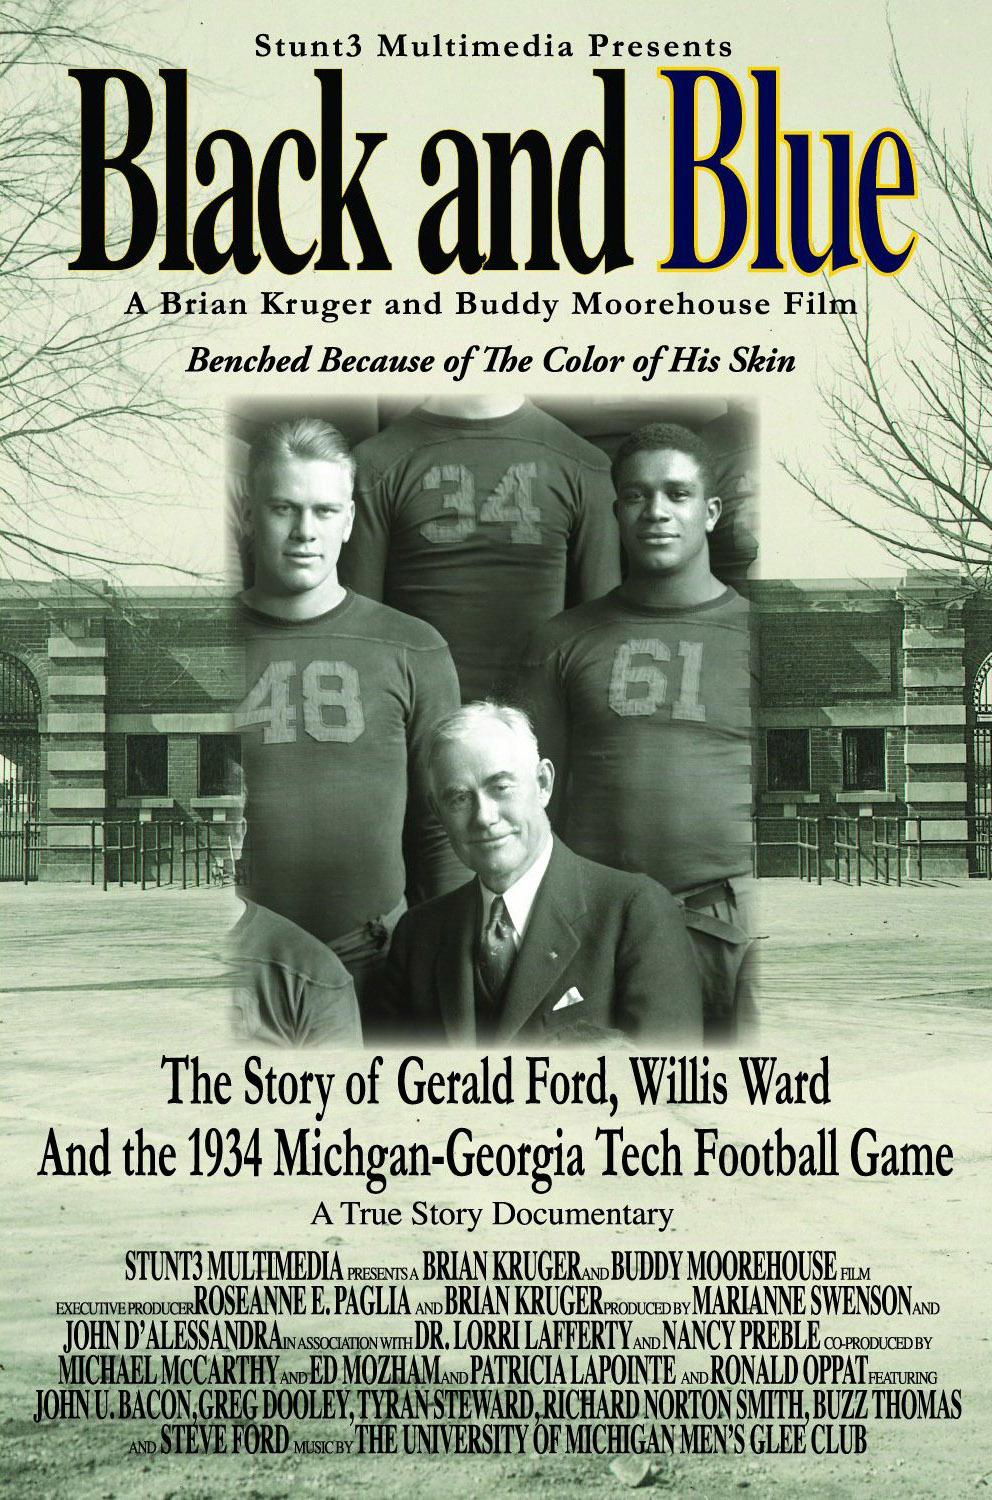 Black and Blue: The Story of Gerald Ford, Willis Ward and the 1934 Michigan-Georgia Tech Game